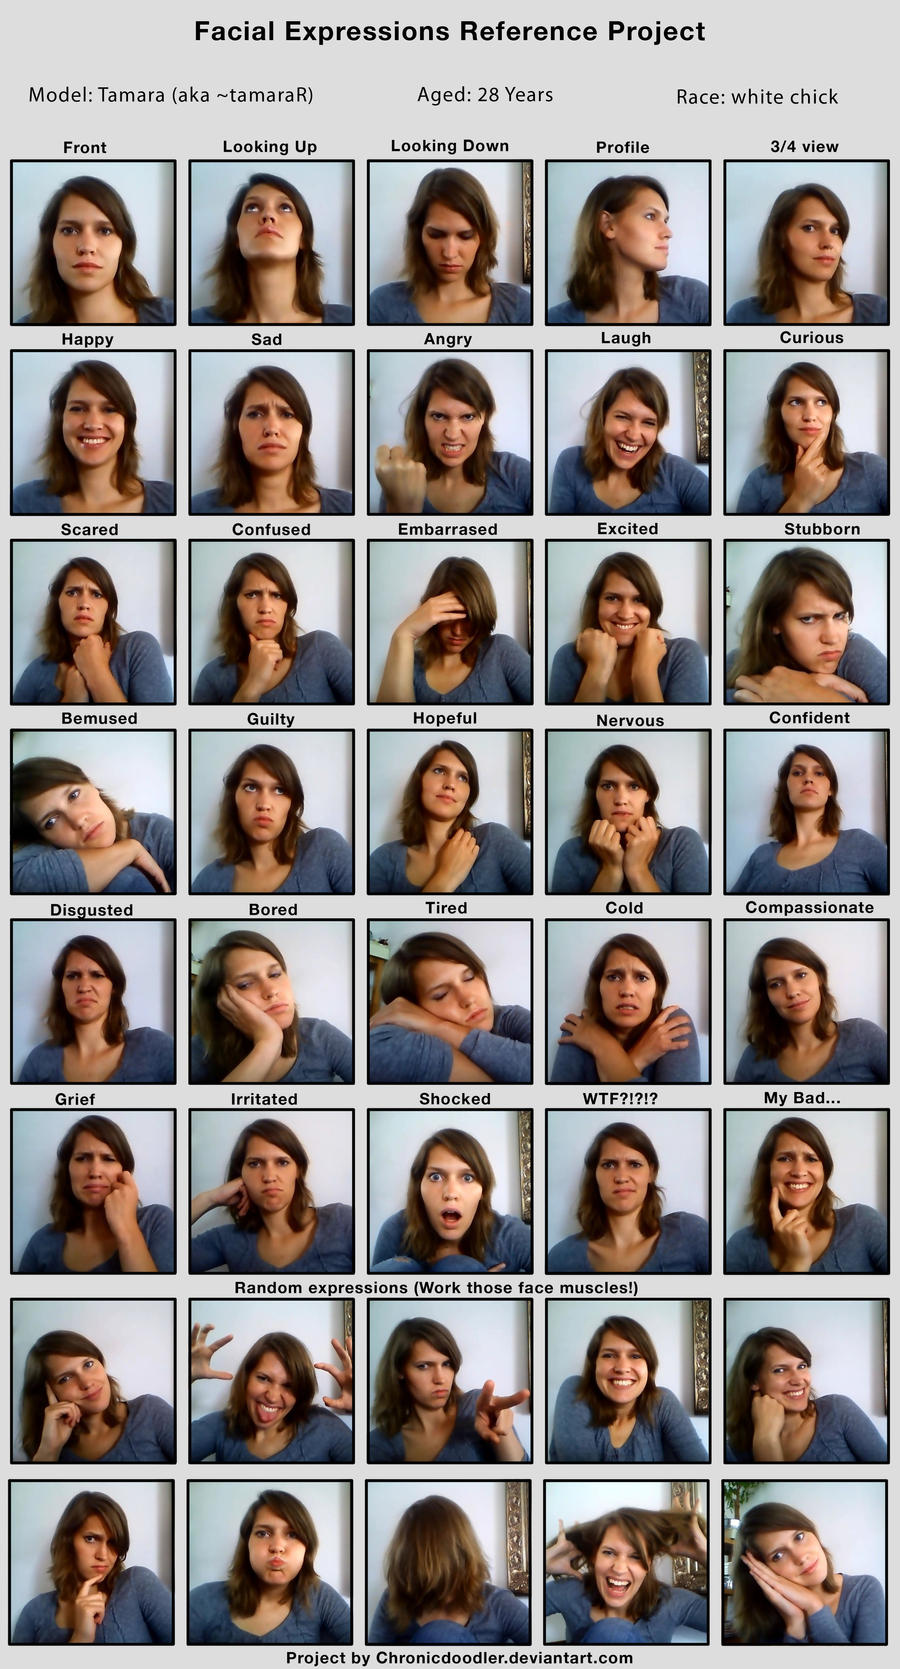 100 Words for Facial Expressions - Daily Writing Tips